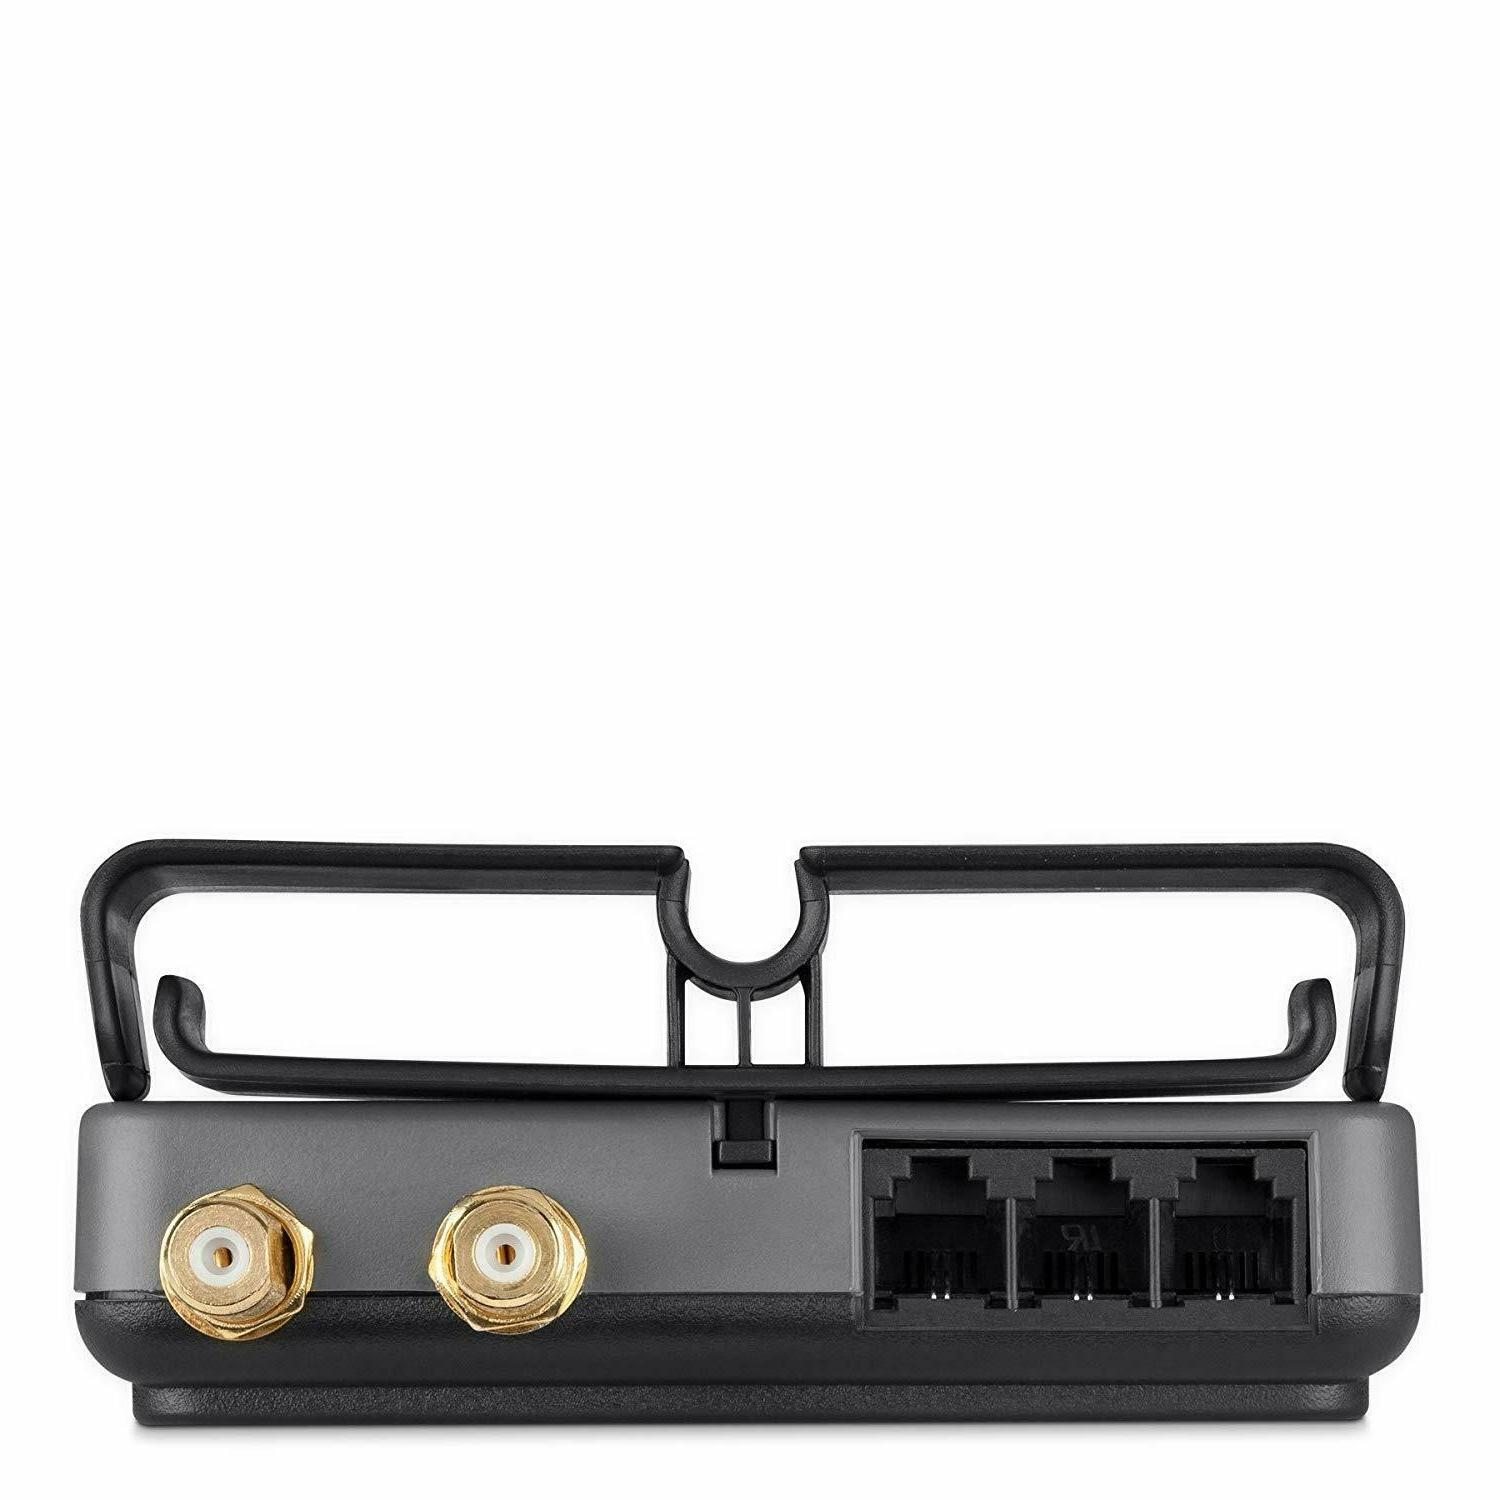 Belkin 12-Outlet Power Strip Surge Protector w/ 8ft Cord – Computers